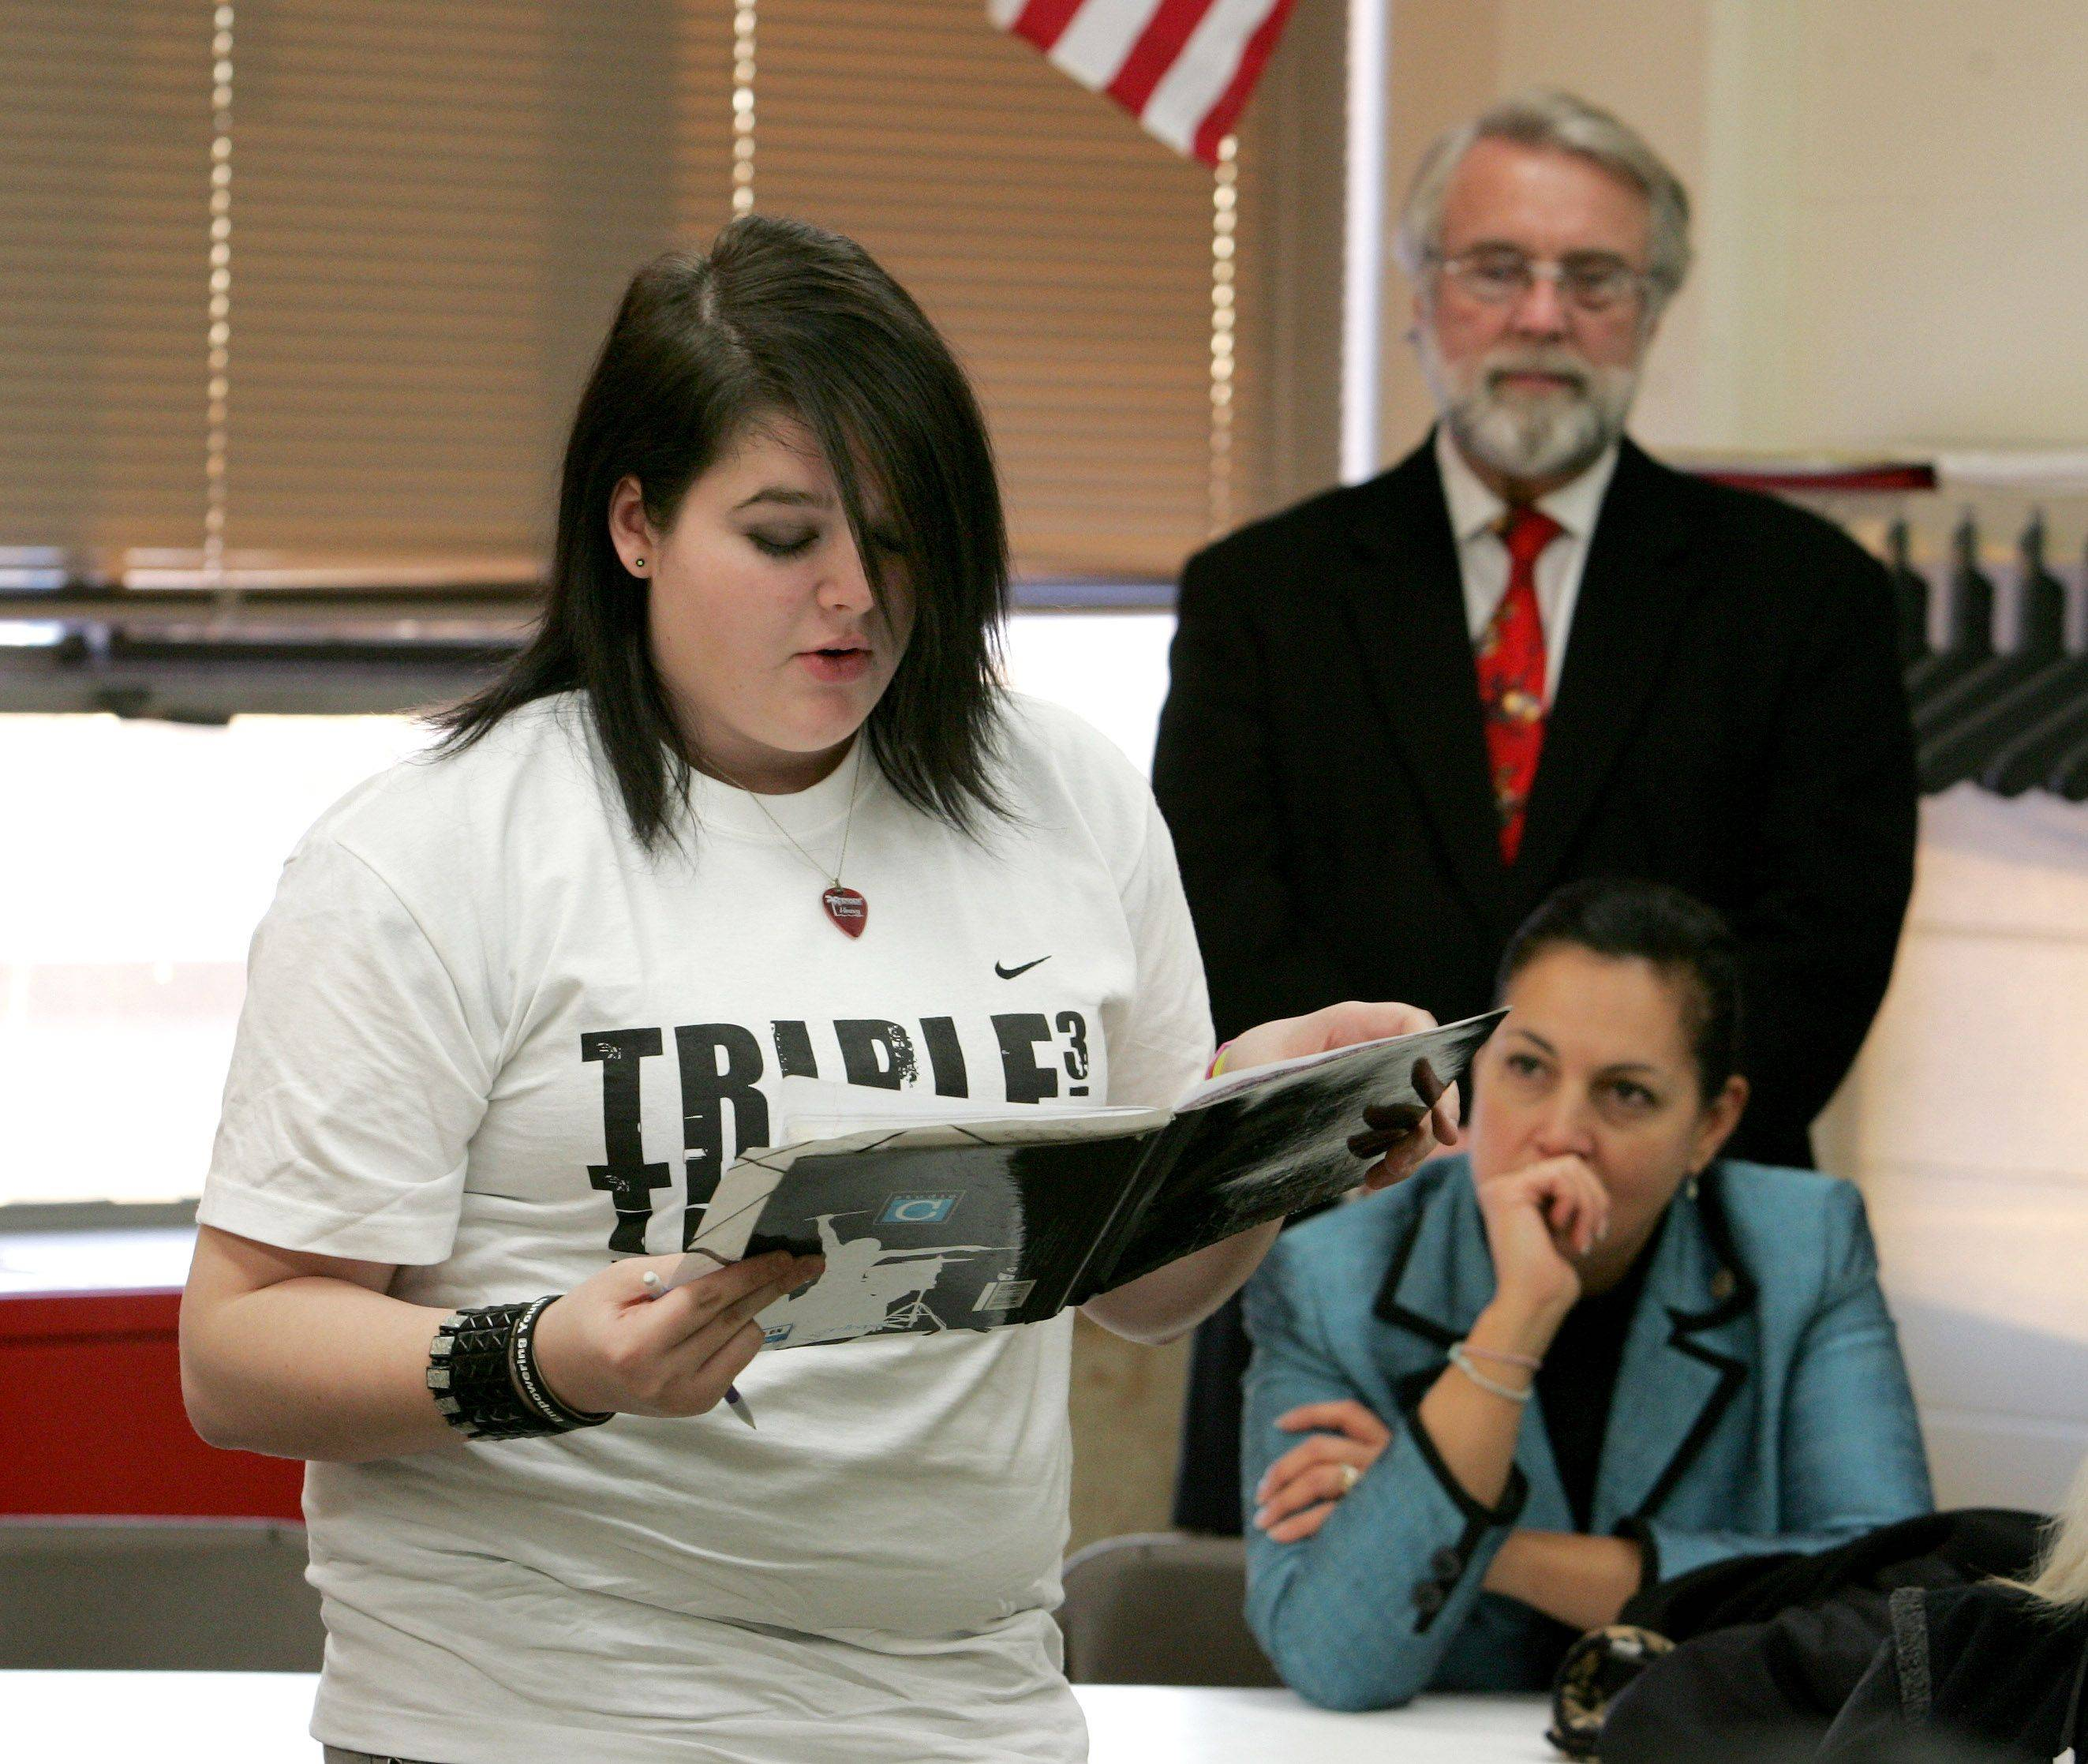 Aurora Mayor Tom Weisner and State Rep. Linda Chapa La Via listen as sophomore Daniell Steward reads one of her poems during a workshop with writer and Wrigley heiress Helen Rosburg at East Aurora High School on Tuesday.